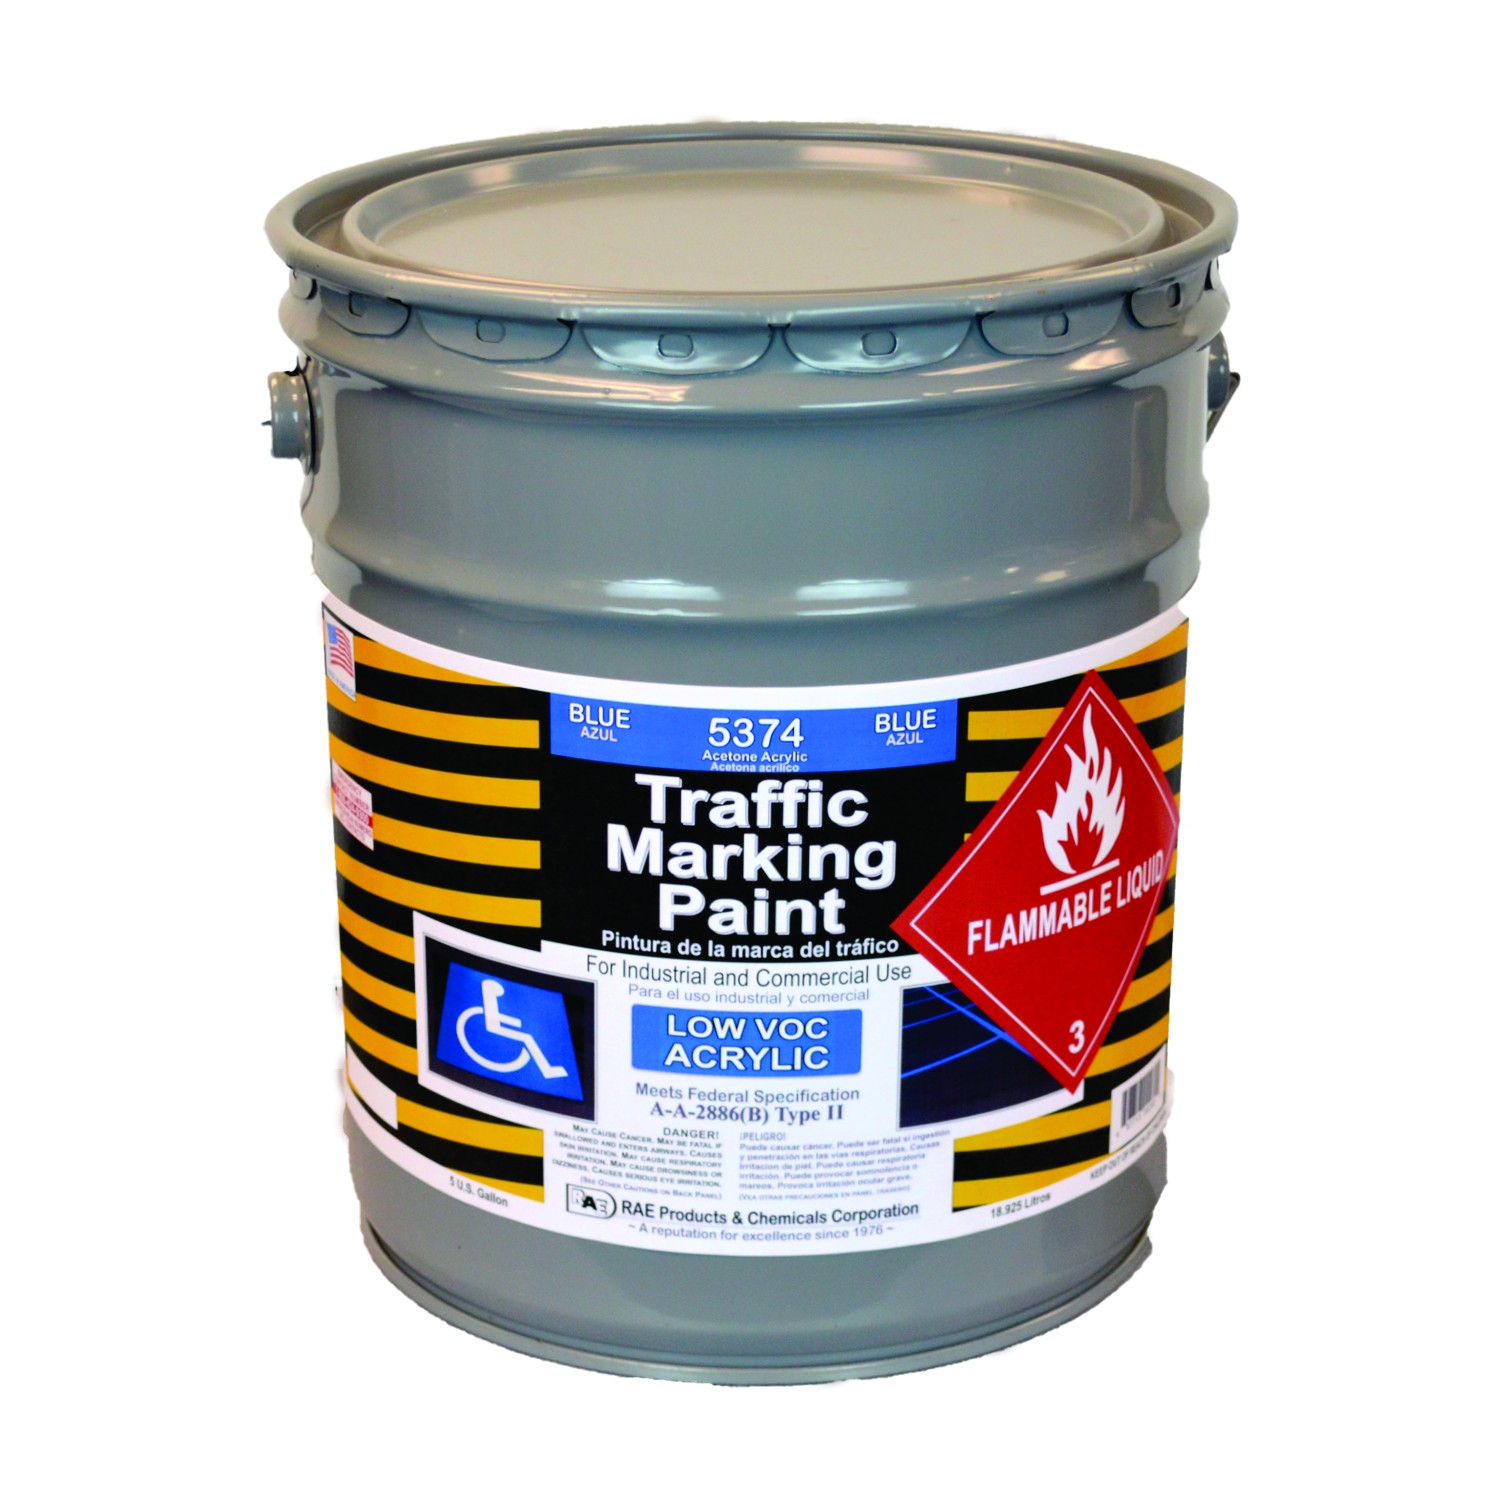 RAE Blue - 5 Gallon - Acetone Acrylic - Low VOC - Solvent Based Marking Paint - 5374-05 - Rae Products and Chemicals Corp | RAE Paint